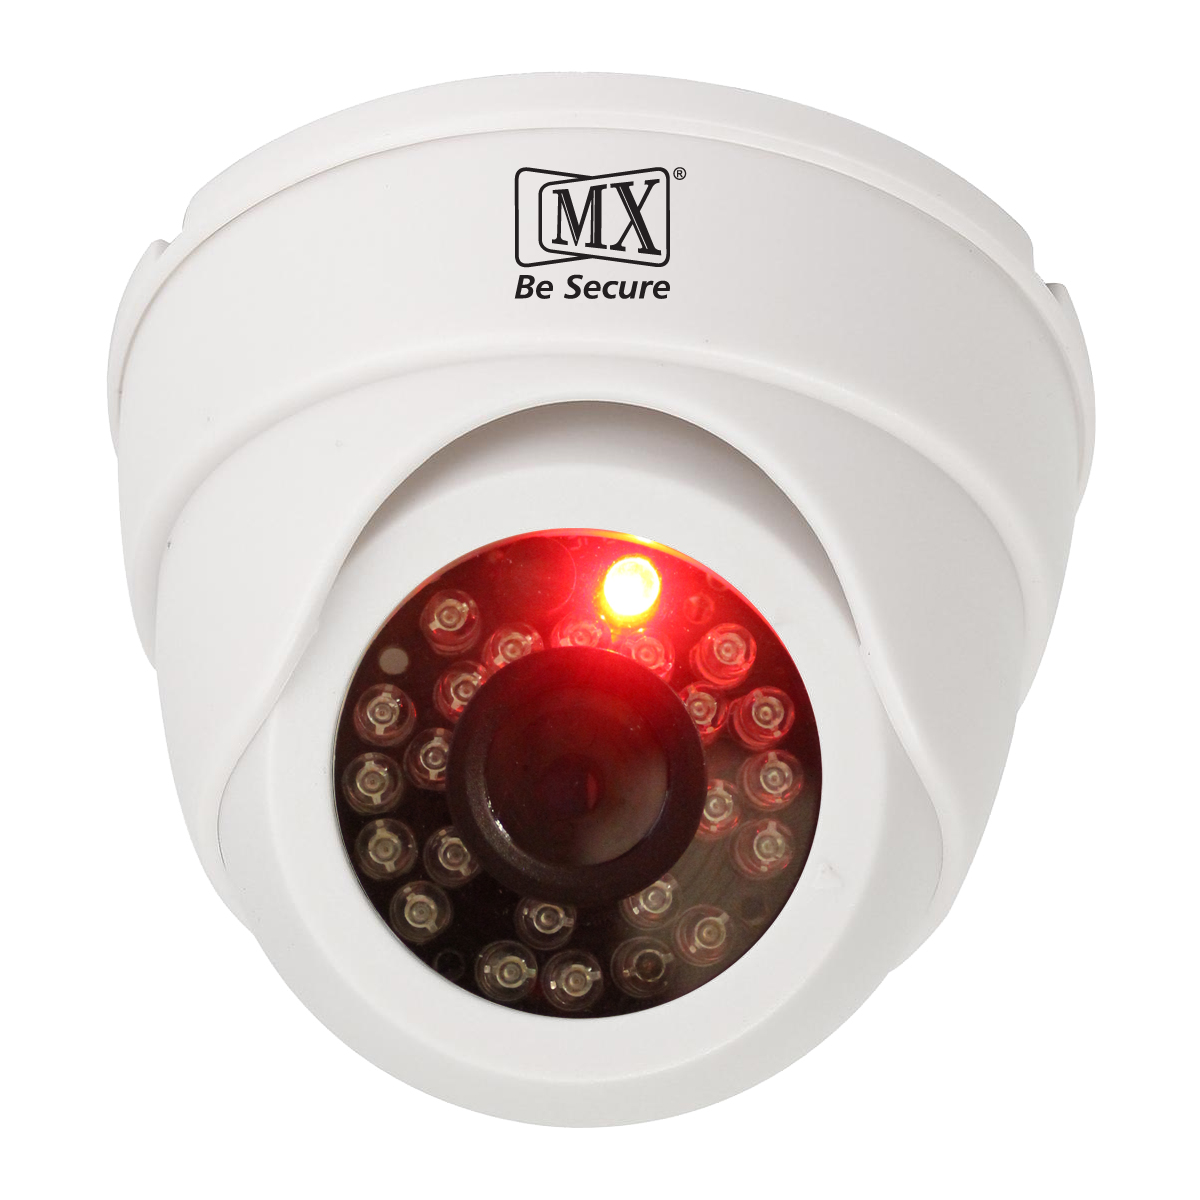 MX Dummy Fake Simulated Infrared IR LED Sensor White Dome Wireless Security Camera With Red Light Realistic Looking CCTV Surveillance